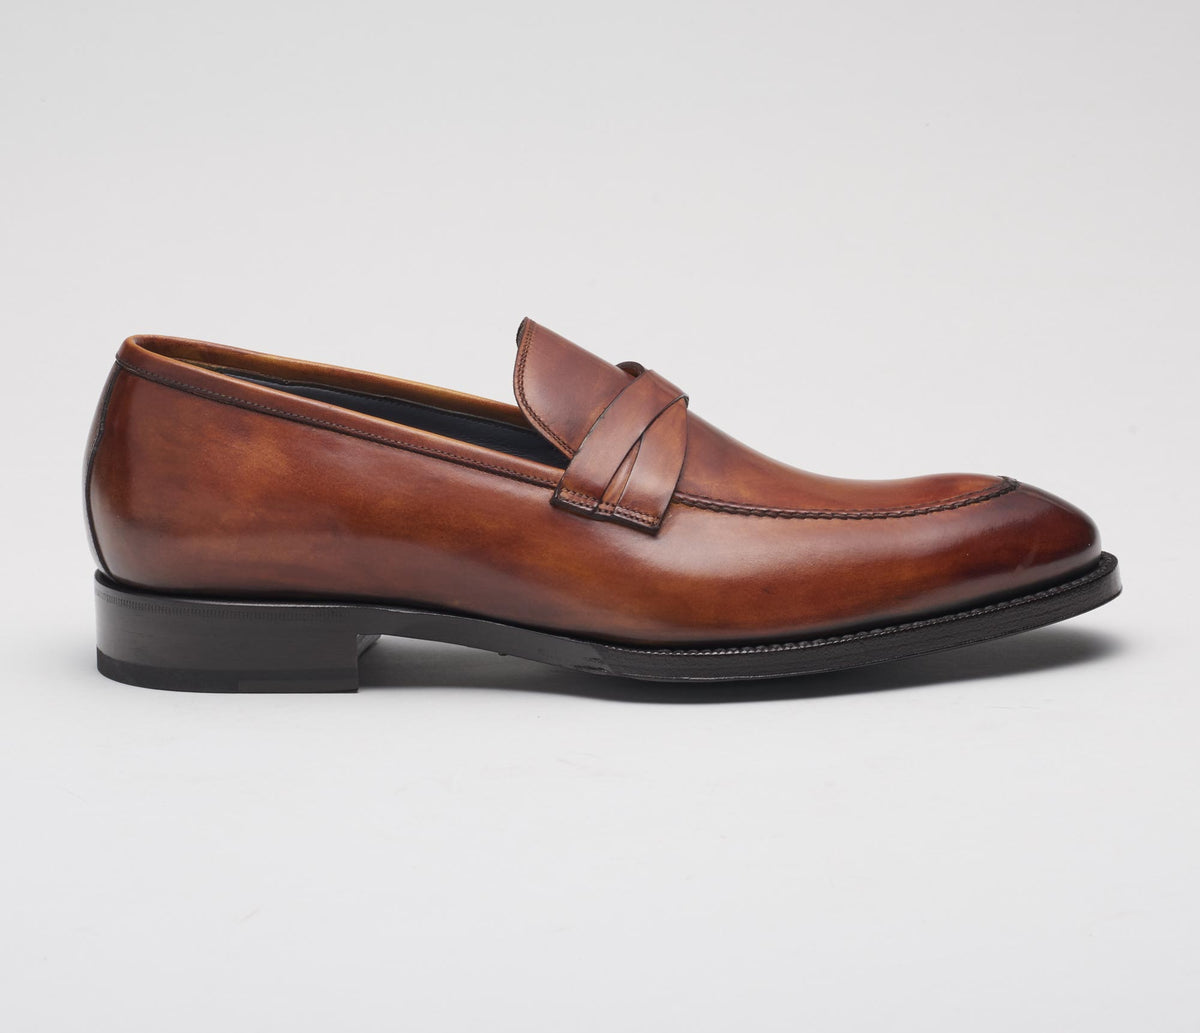 Siena Leather Loafer in Giallo Okra